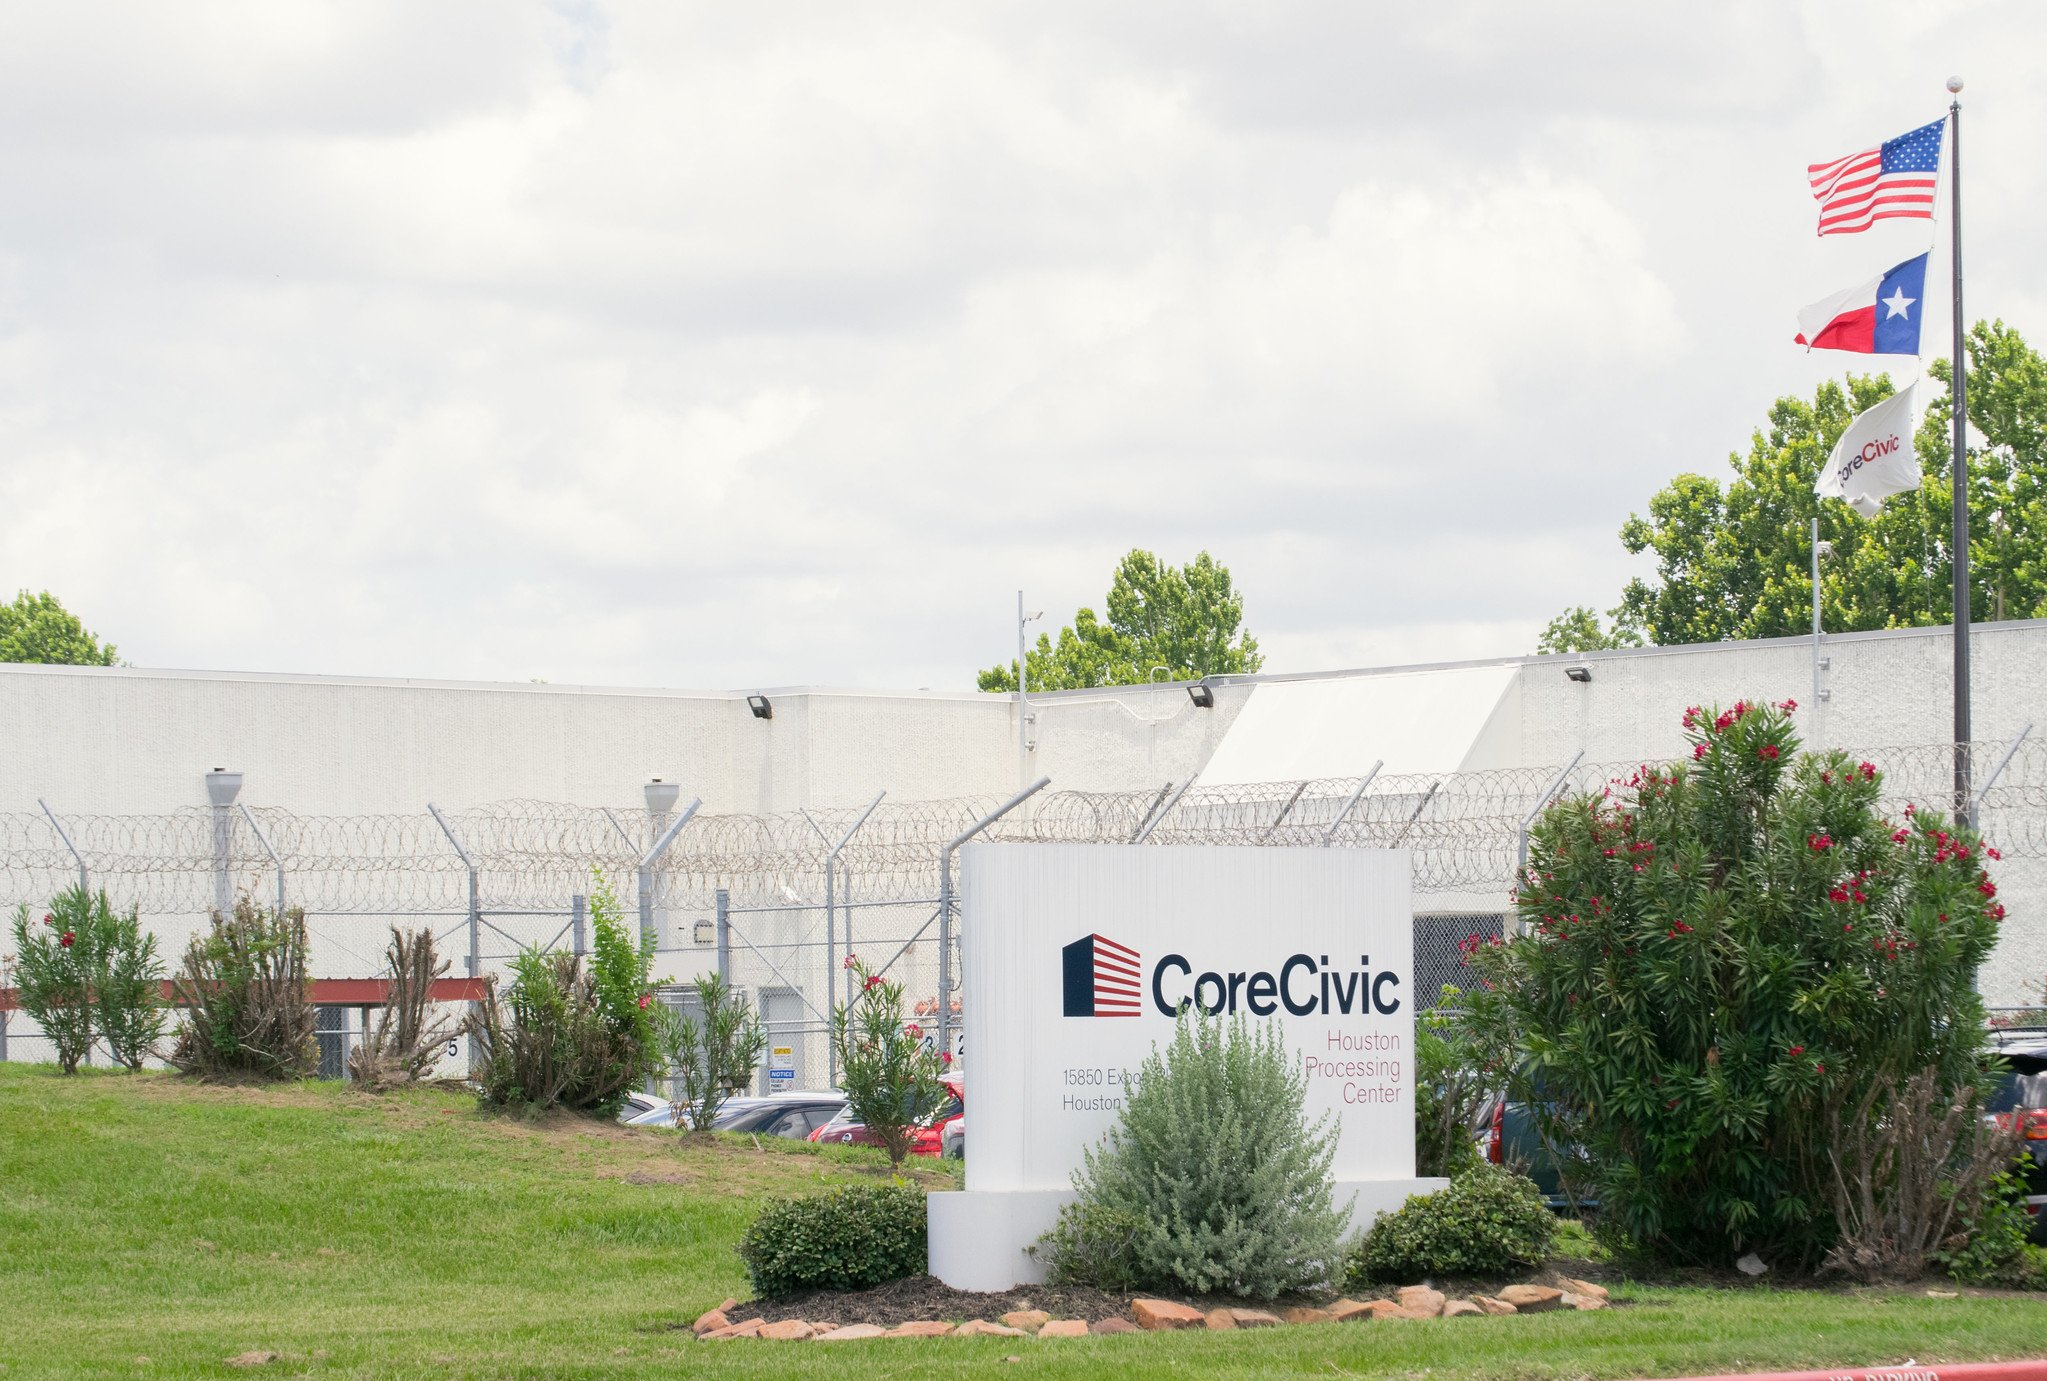 New Bill Would End Tax Breaks For Private Prisons